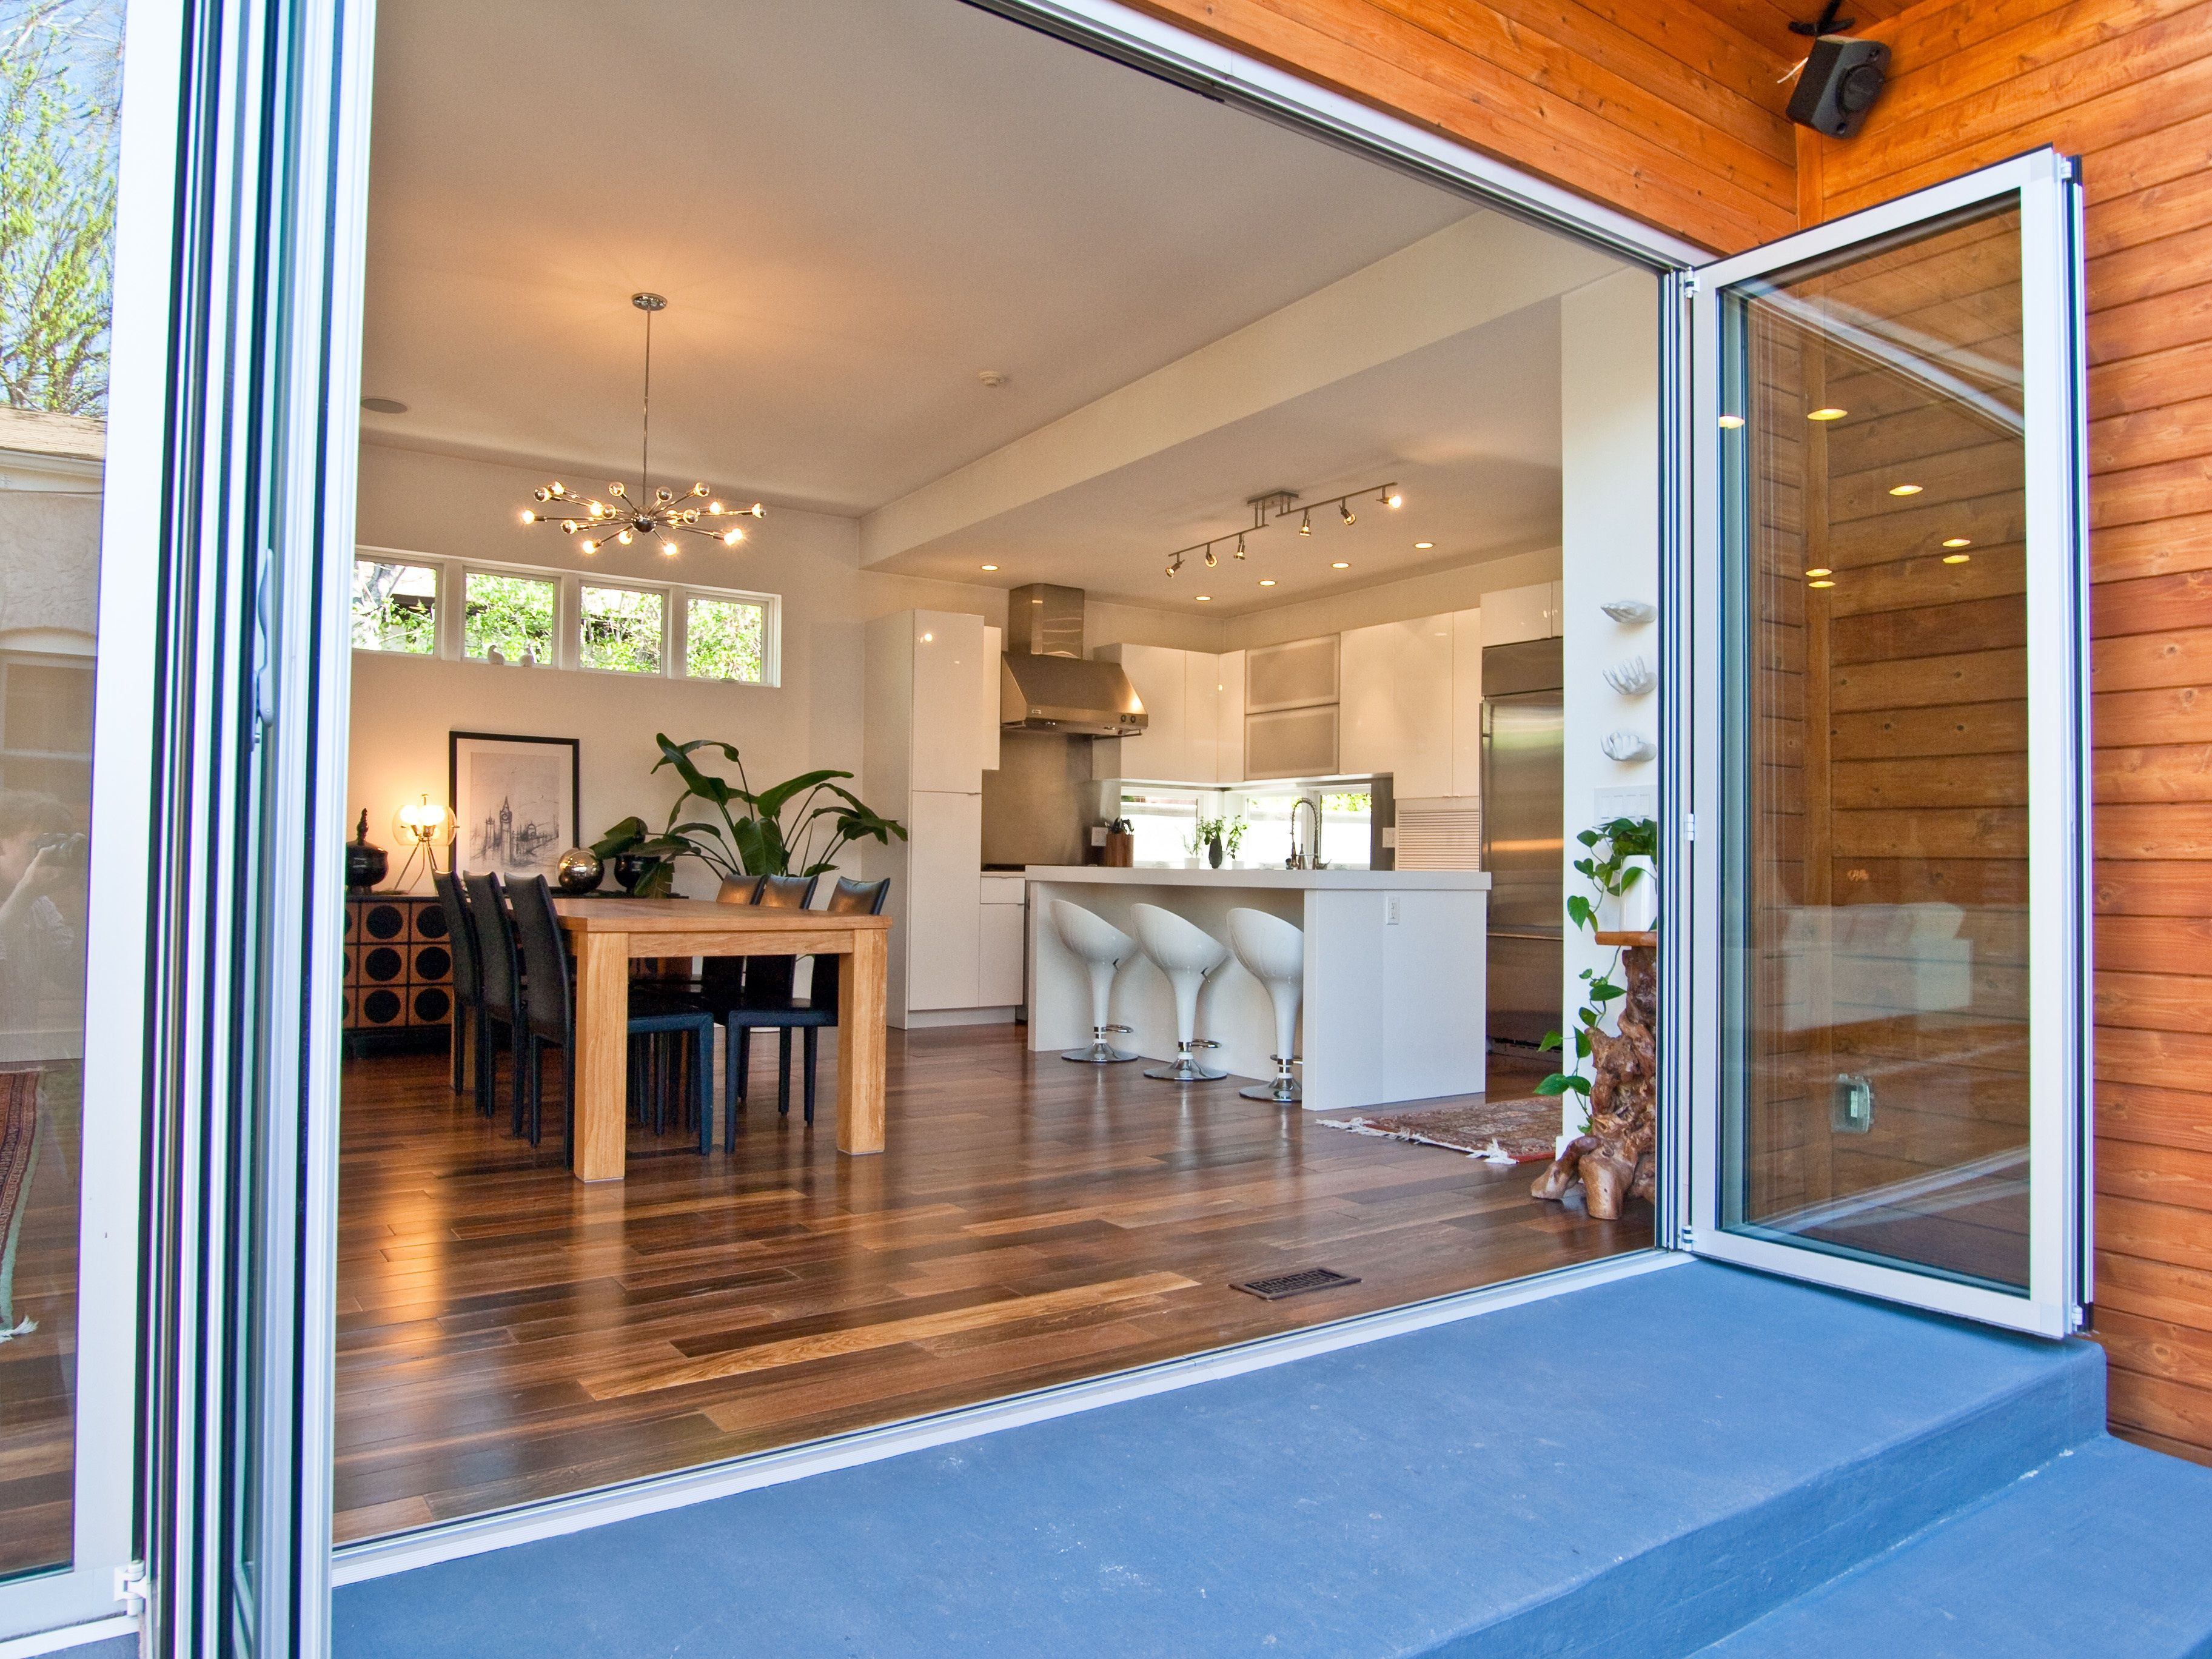 Nana glass wall system. Doors opening outside. Glass doors, glass wall. Indoor outdoor living.